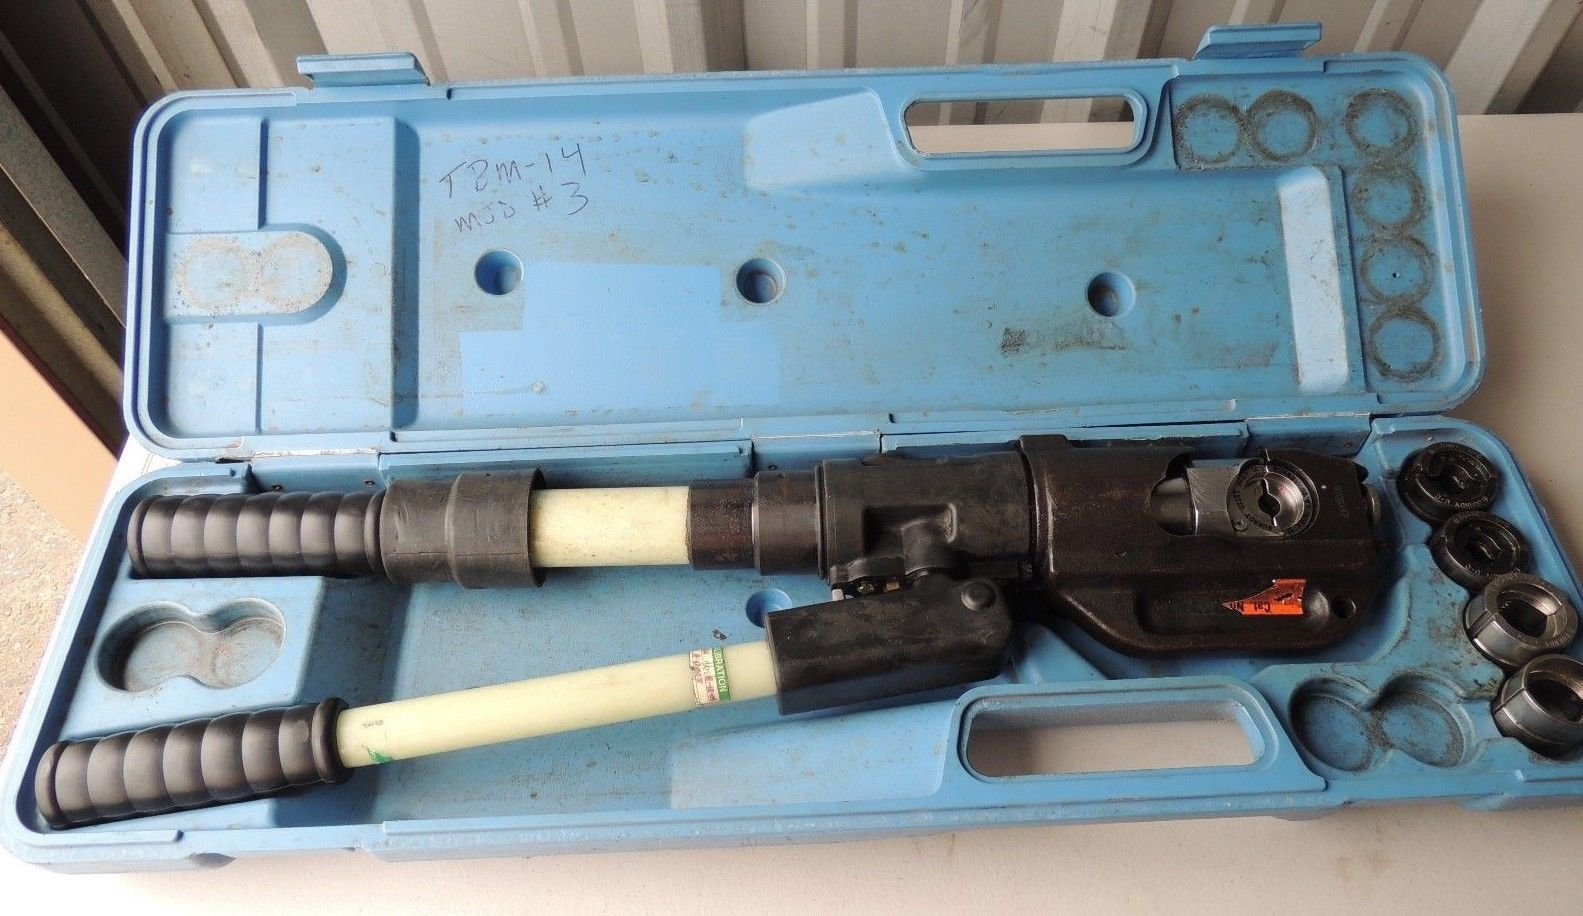 T&B Manual Hydraulic Crimper Tool with Case and 14 similar items